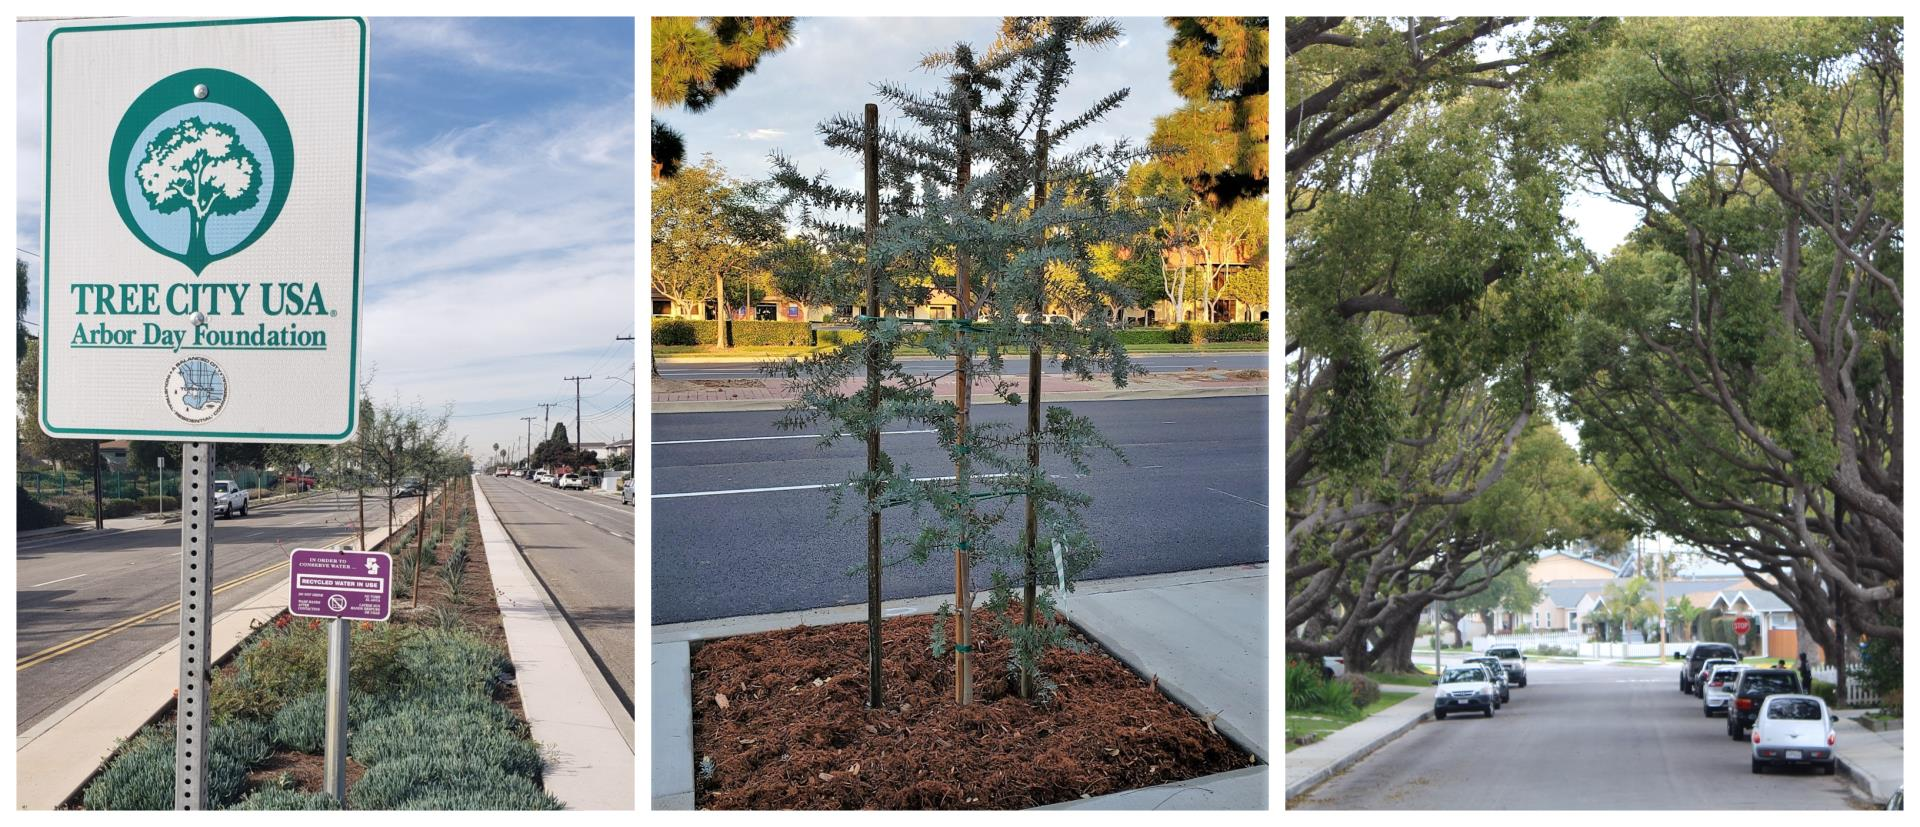 Tree Planting Collage showing tree city USA sign, a planted median tree, and beautiful canopy of trees